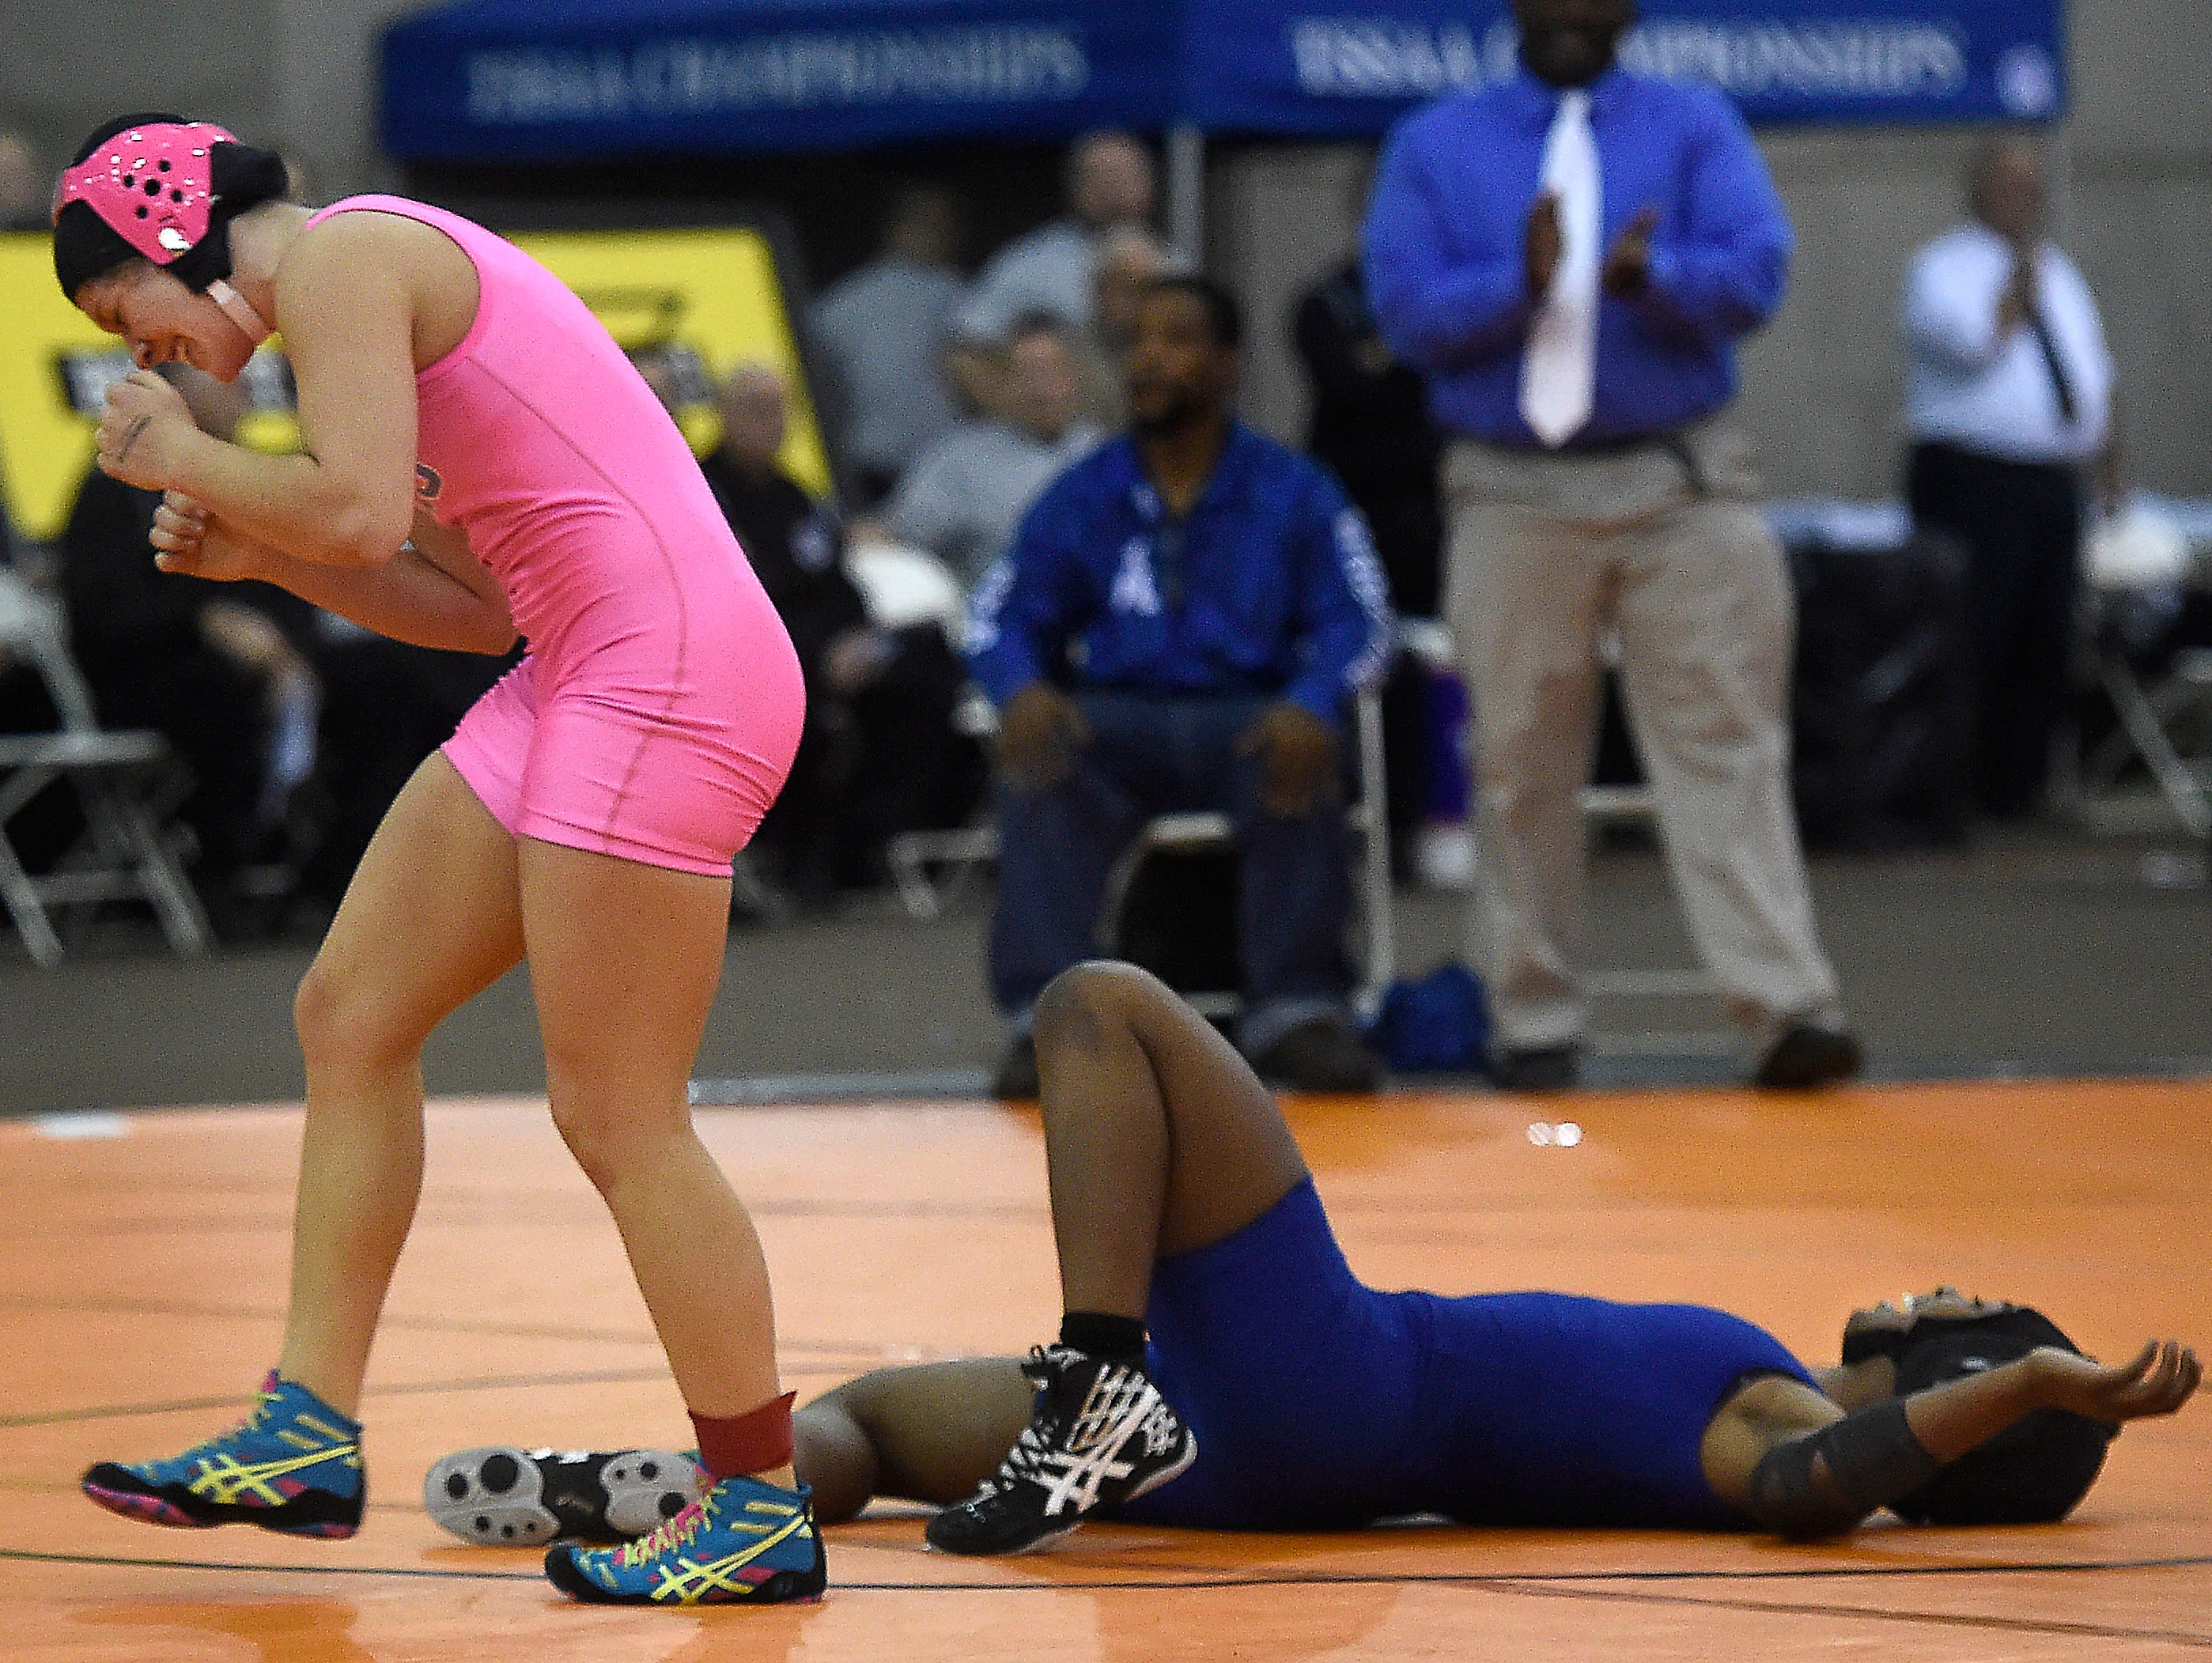 Elise Dille (Cumberland Co.) celebrates her win over Shantoia Blackburn (Antioch) at the TSSAA state wrestling championships Saturday Feb. 20, 2016, in Franklin, Tenn.